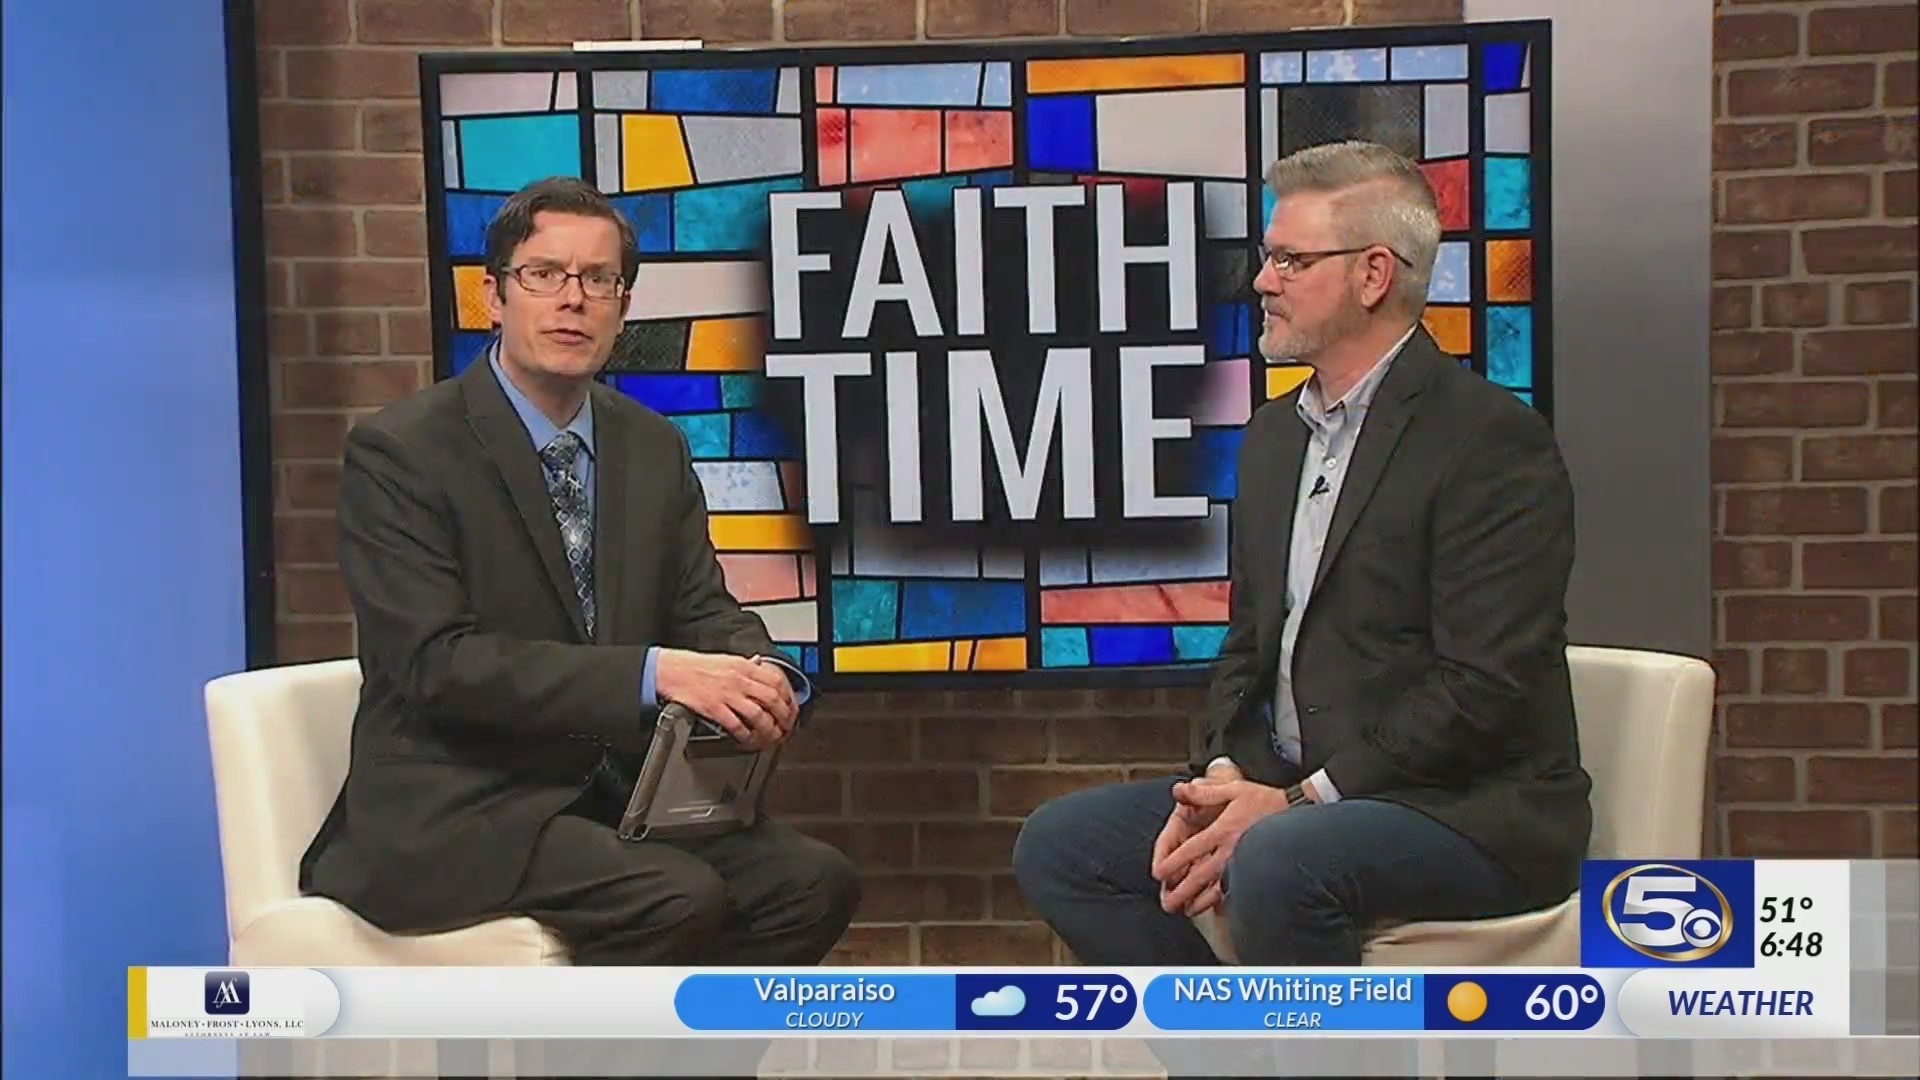 Faith_Time___Strong_Marriages_0_20190210130446